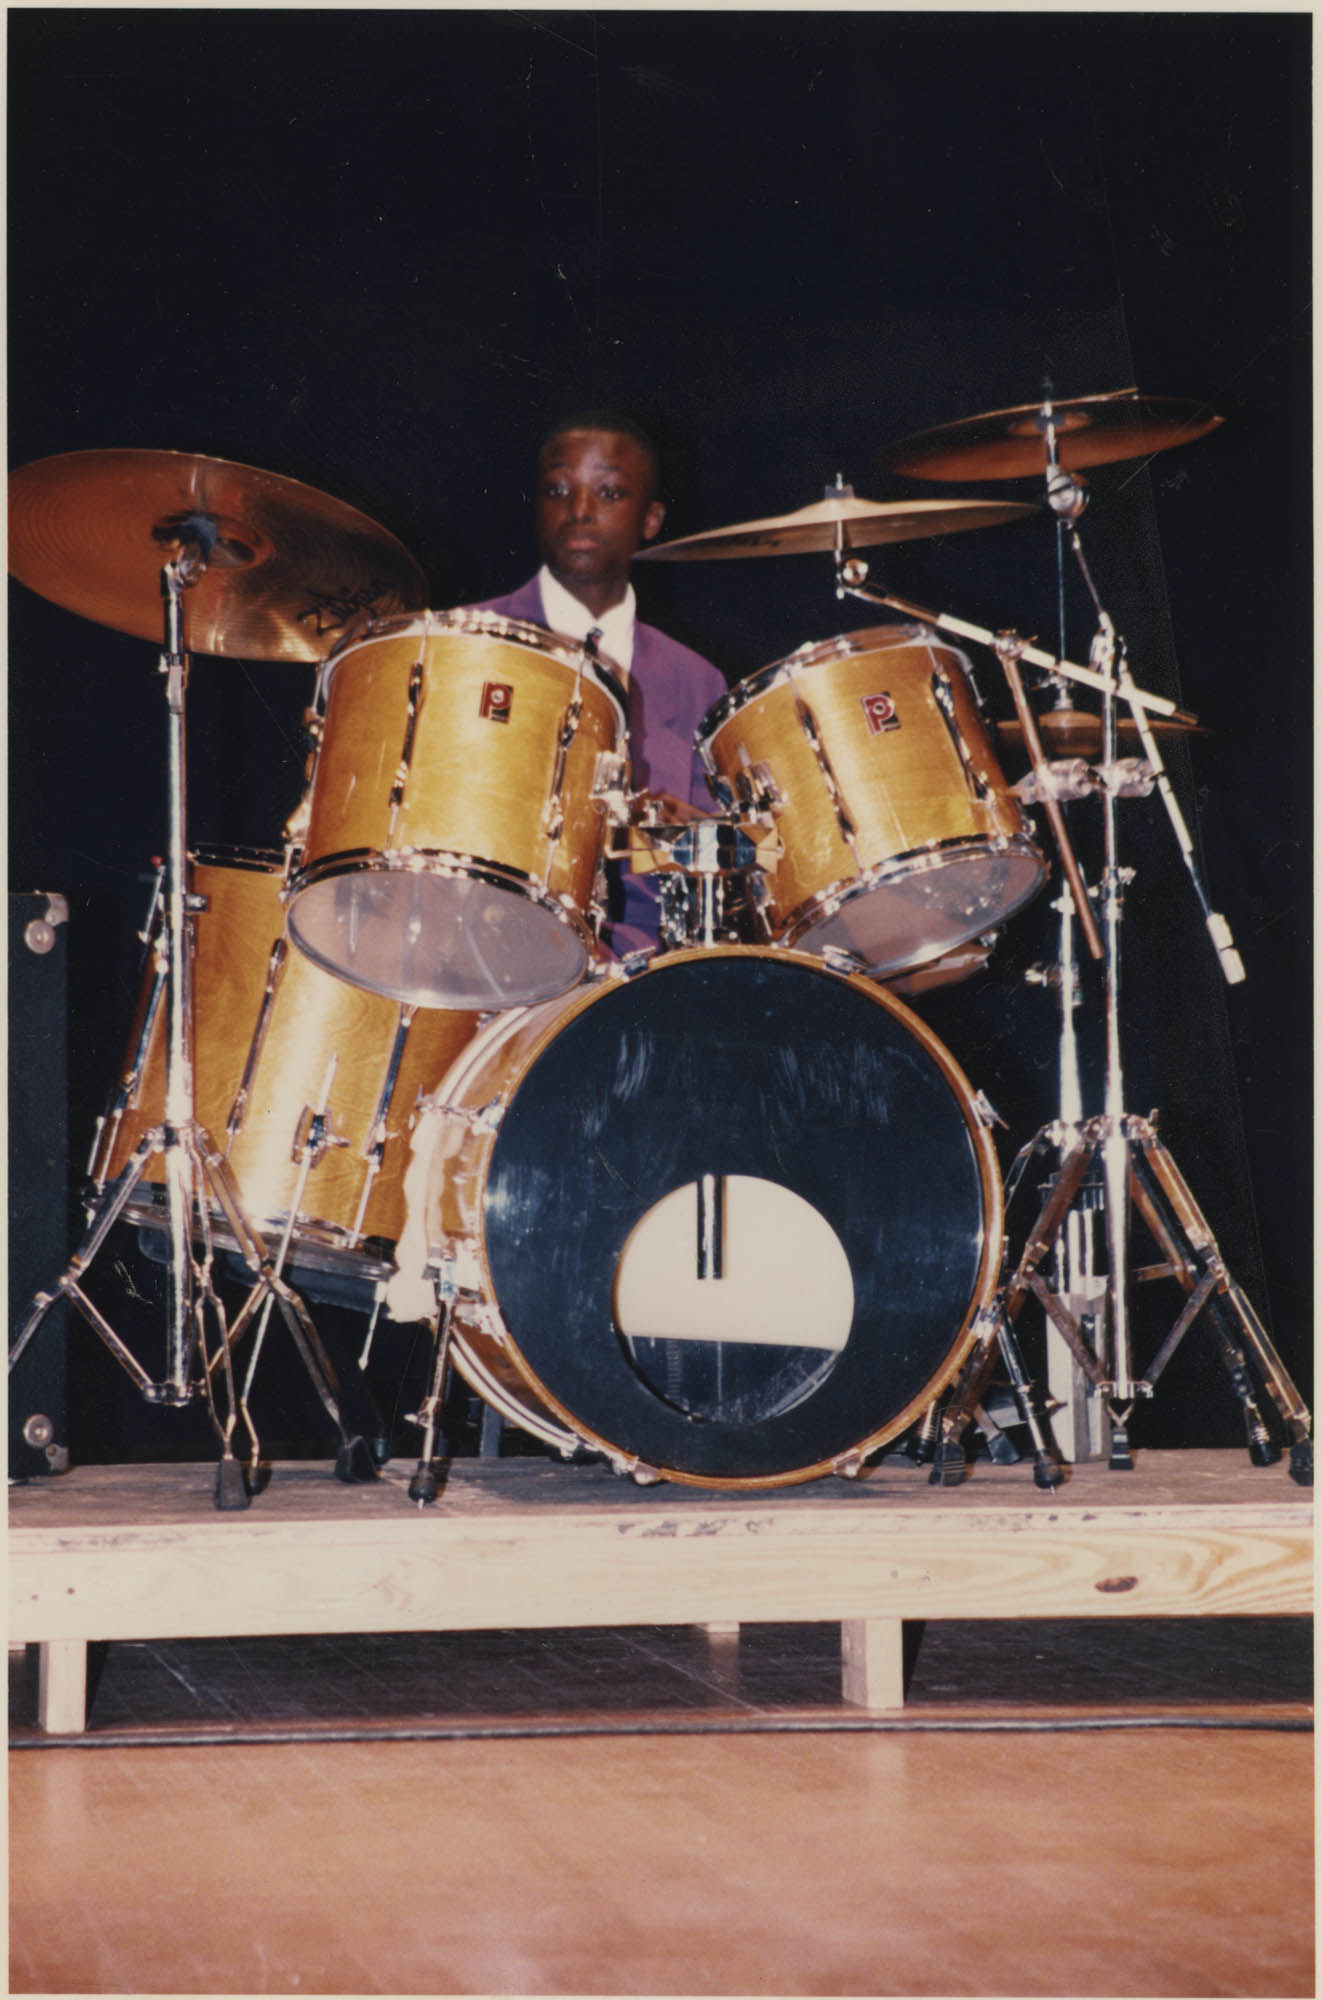 Photograph of a Young Man Playing Drums